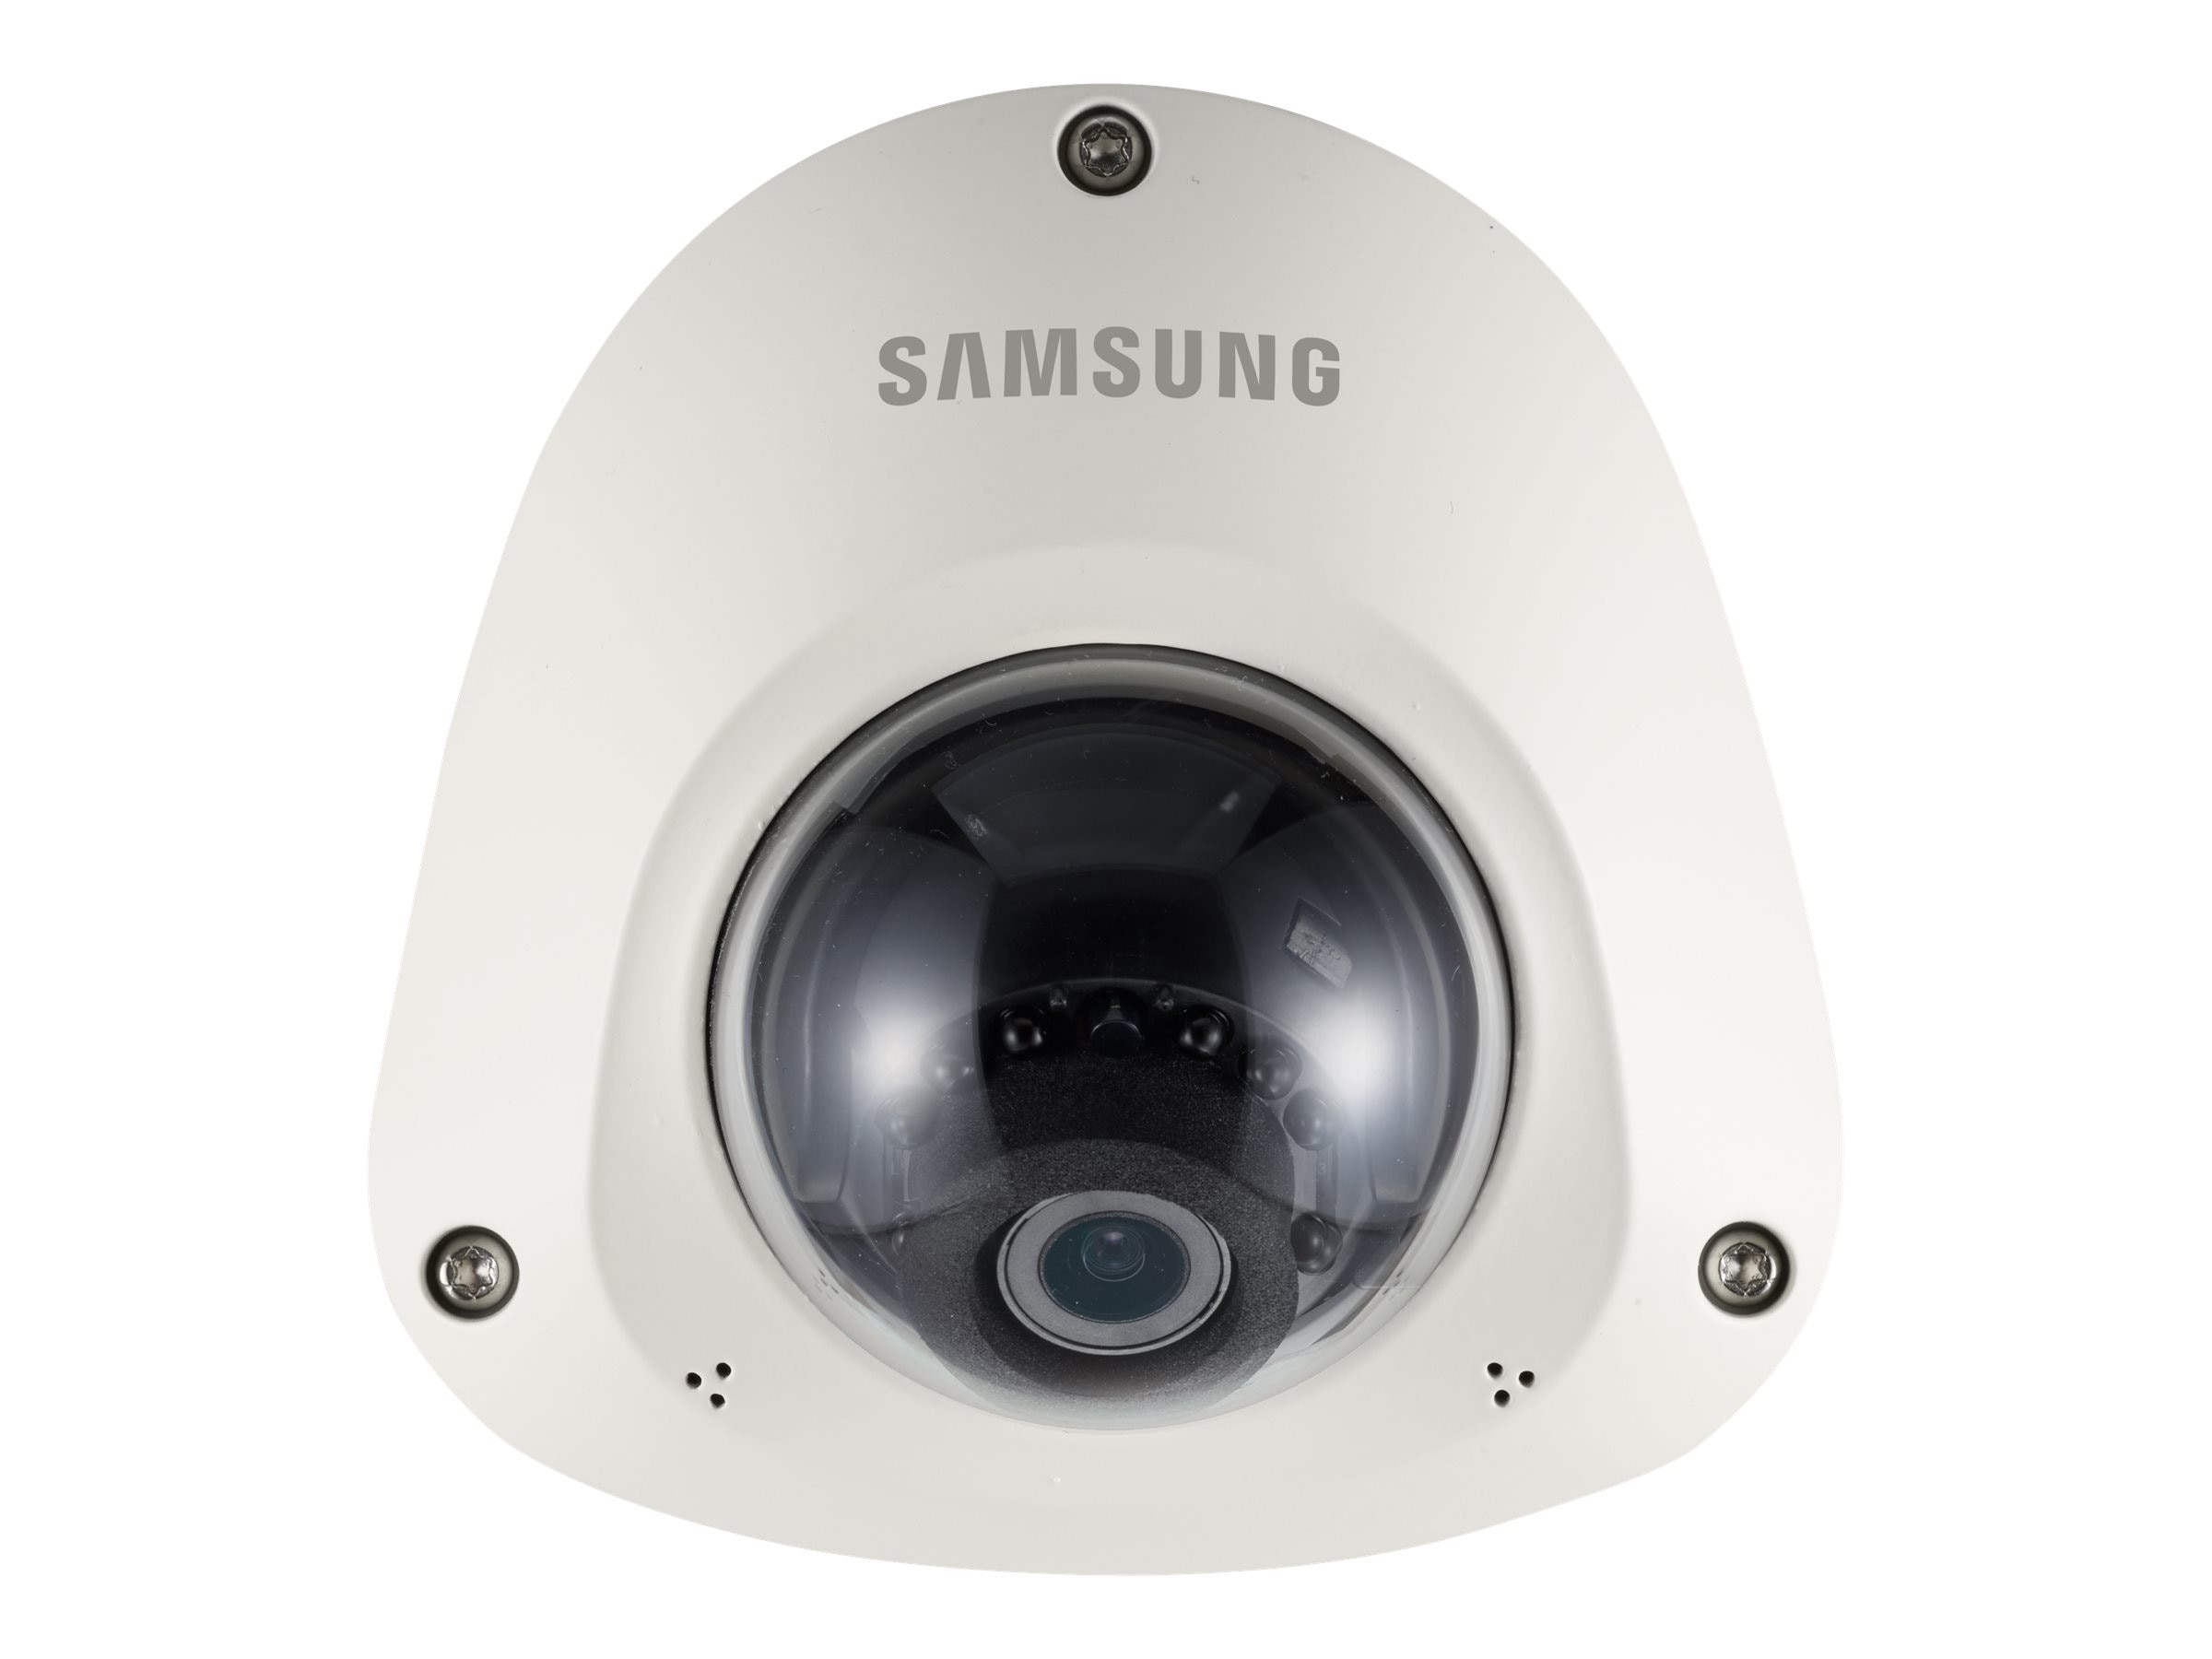 Samsung 2MP Full HD Vandal-Resistant Network IR Flat Camera, SNV-L6013R